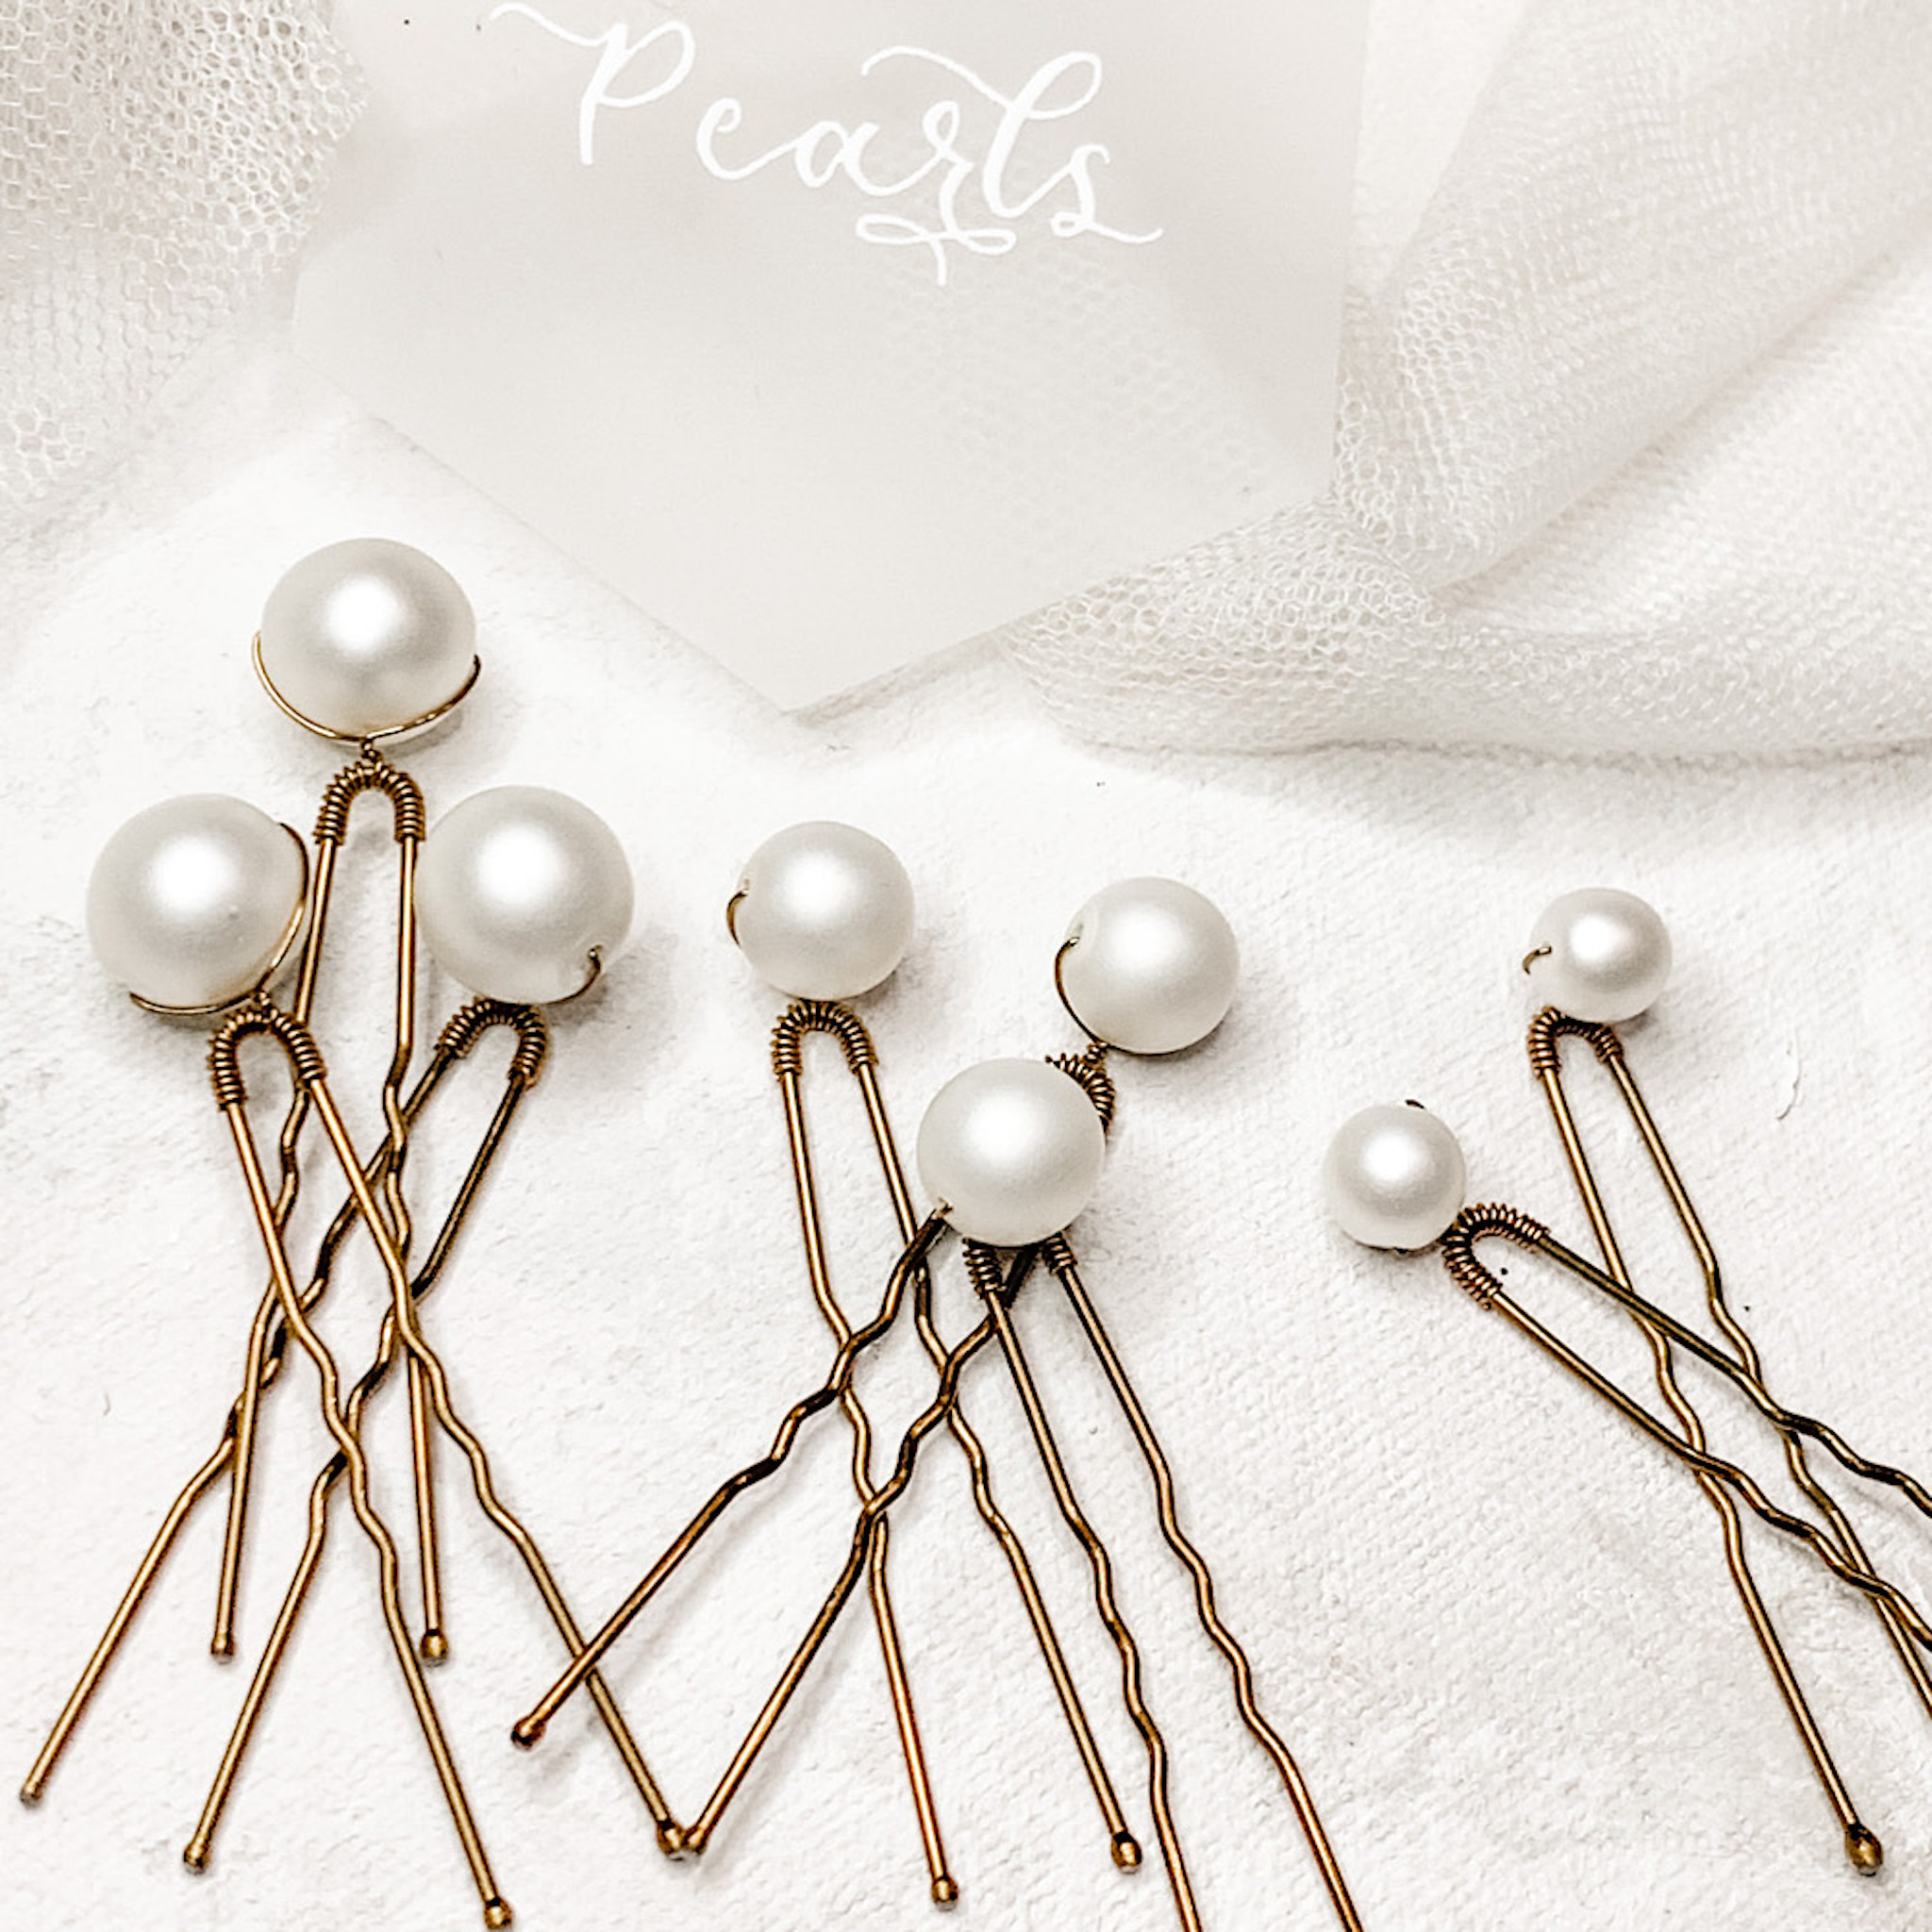 Frosted Pearl Pin Set